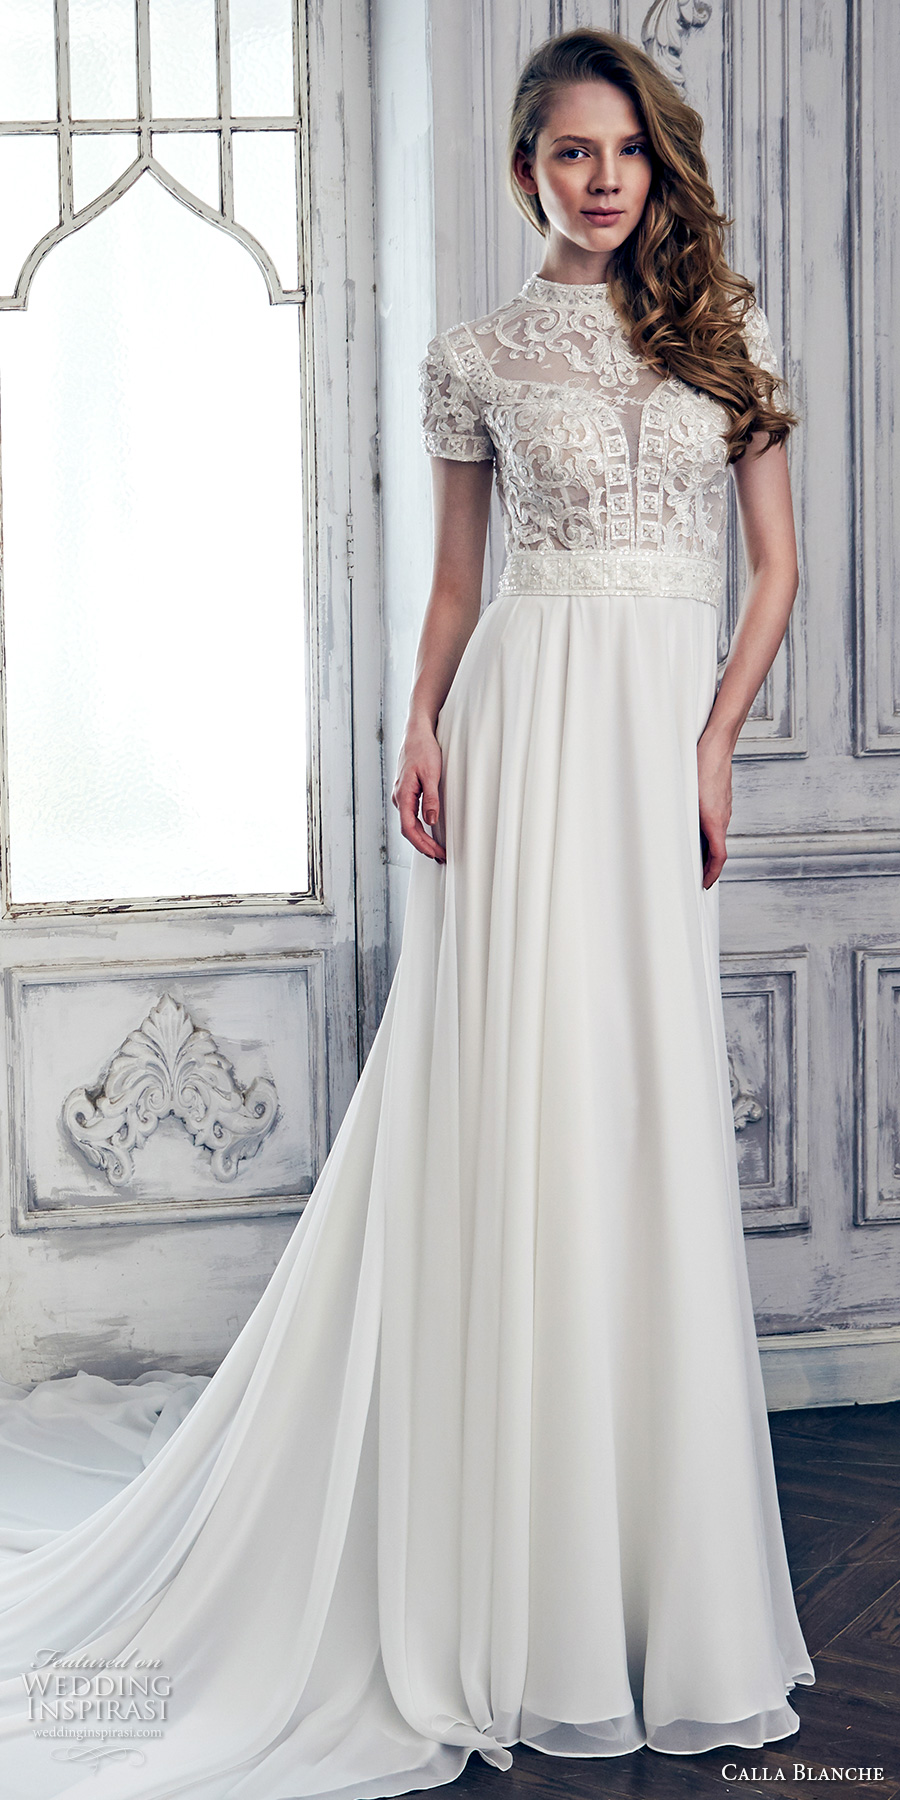 calla blanche spring 2017 bridal short sleeves high jewel neck heavily embellished bodice romantic a line wedding dress keyhole back chapel train (17105) mv